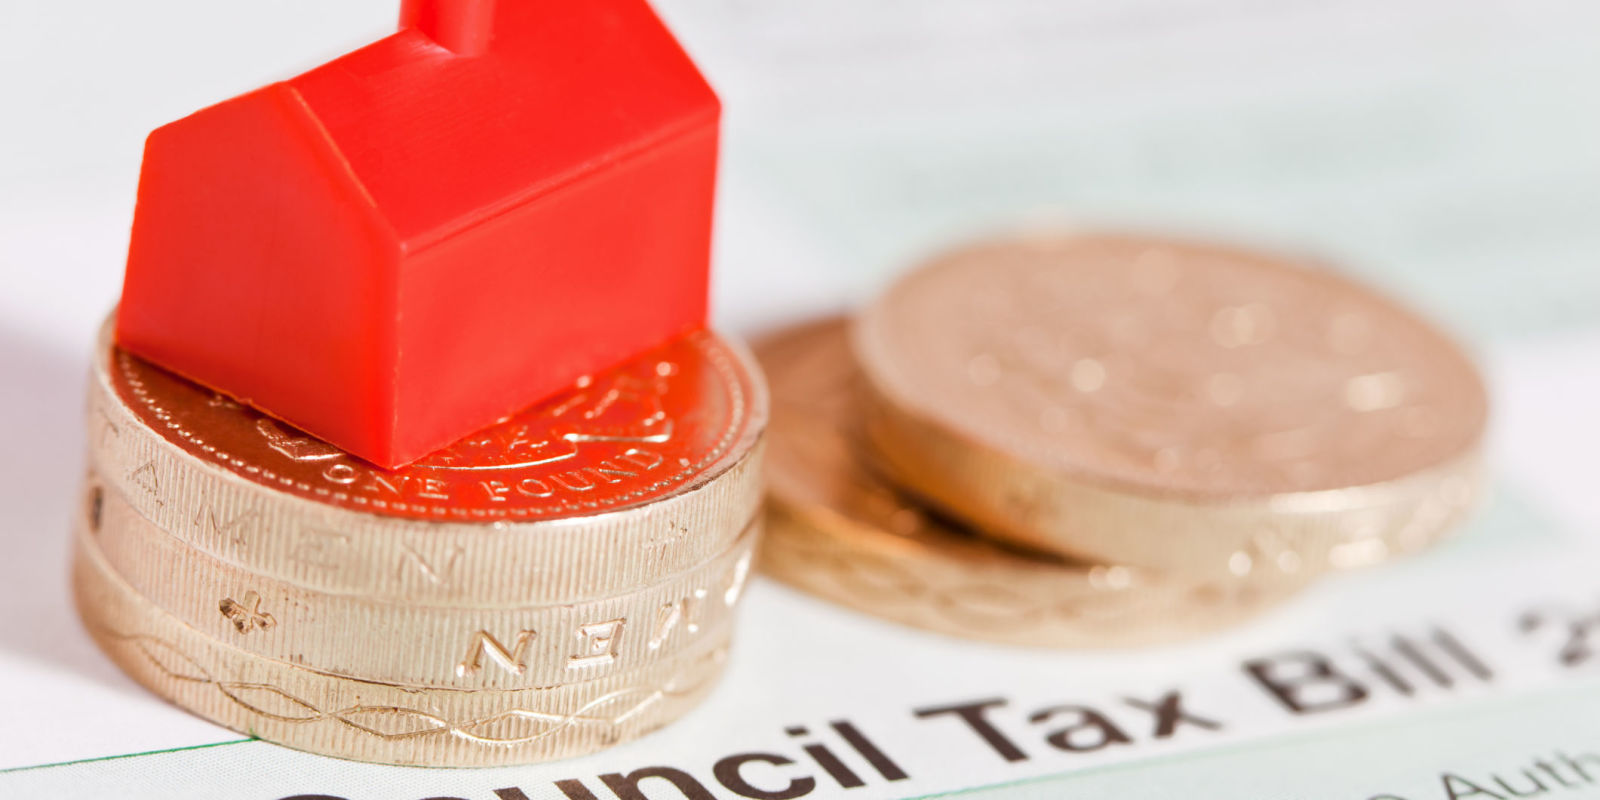 Pay.housebeautiful.com Are You Paying Too Much Council Tax